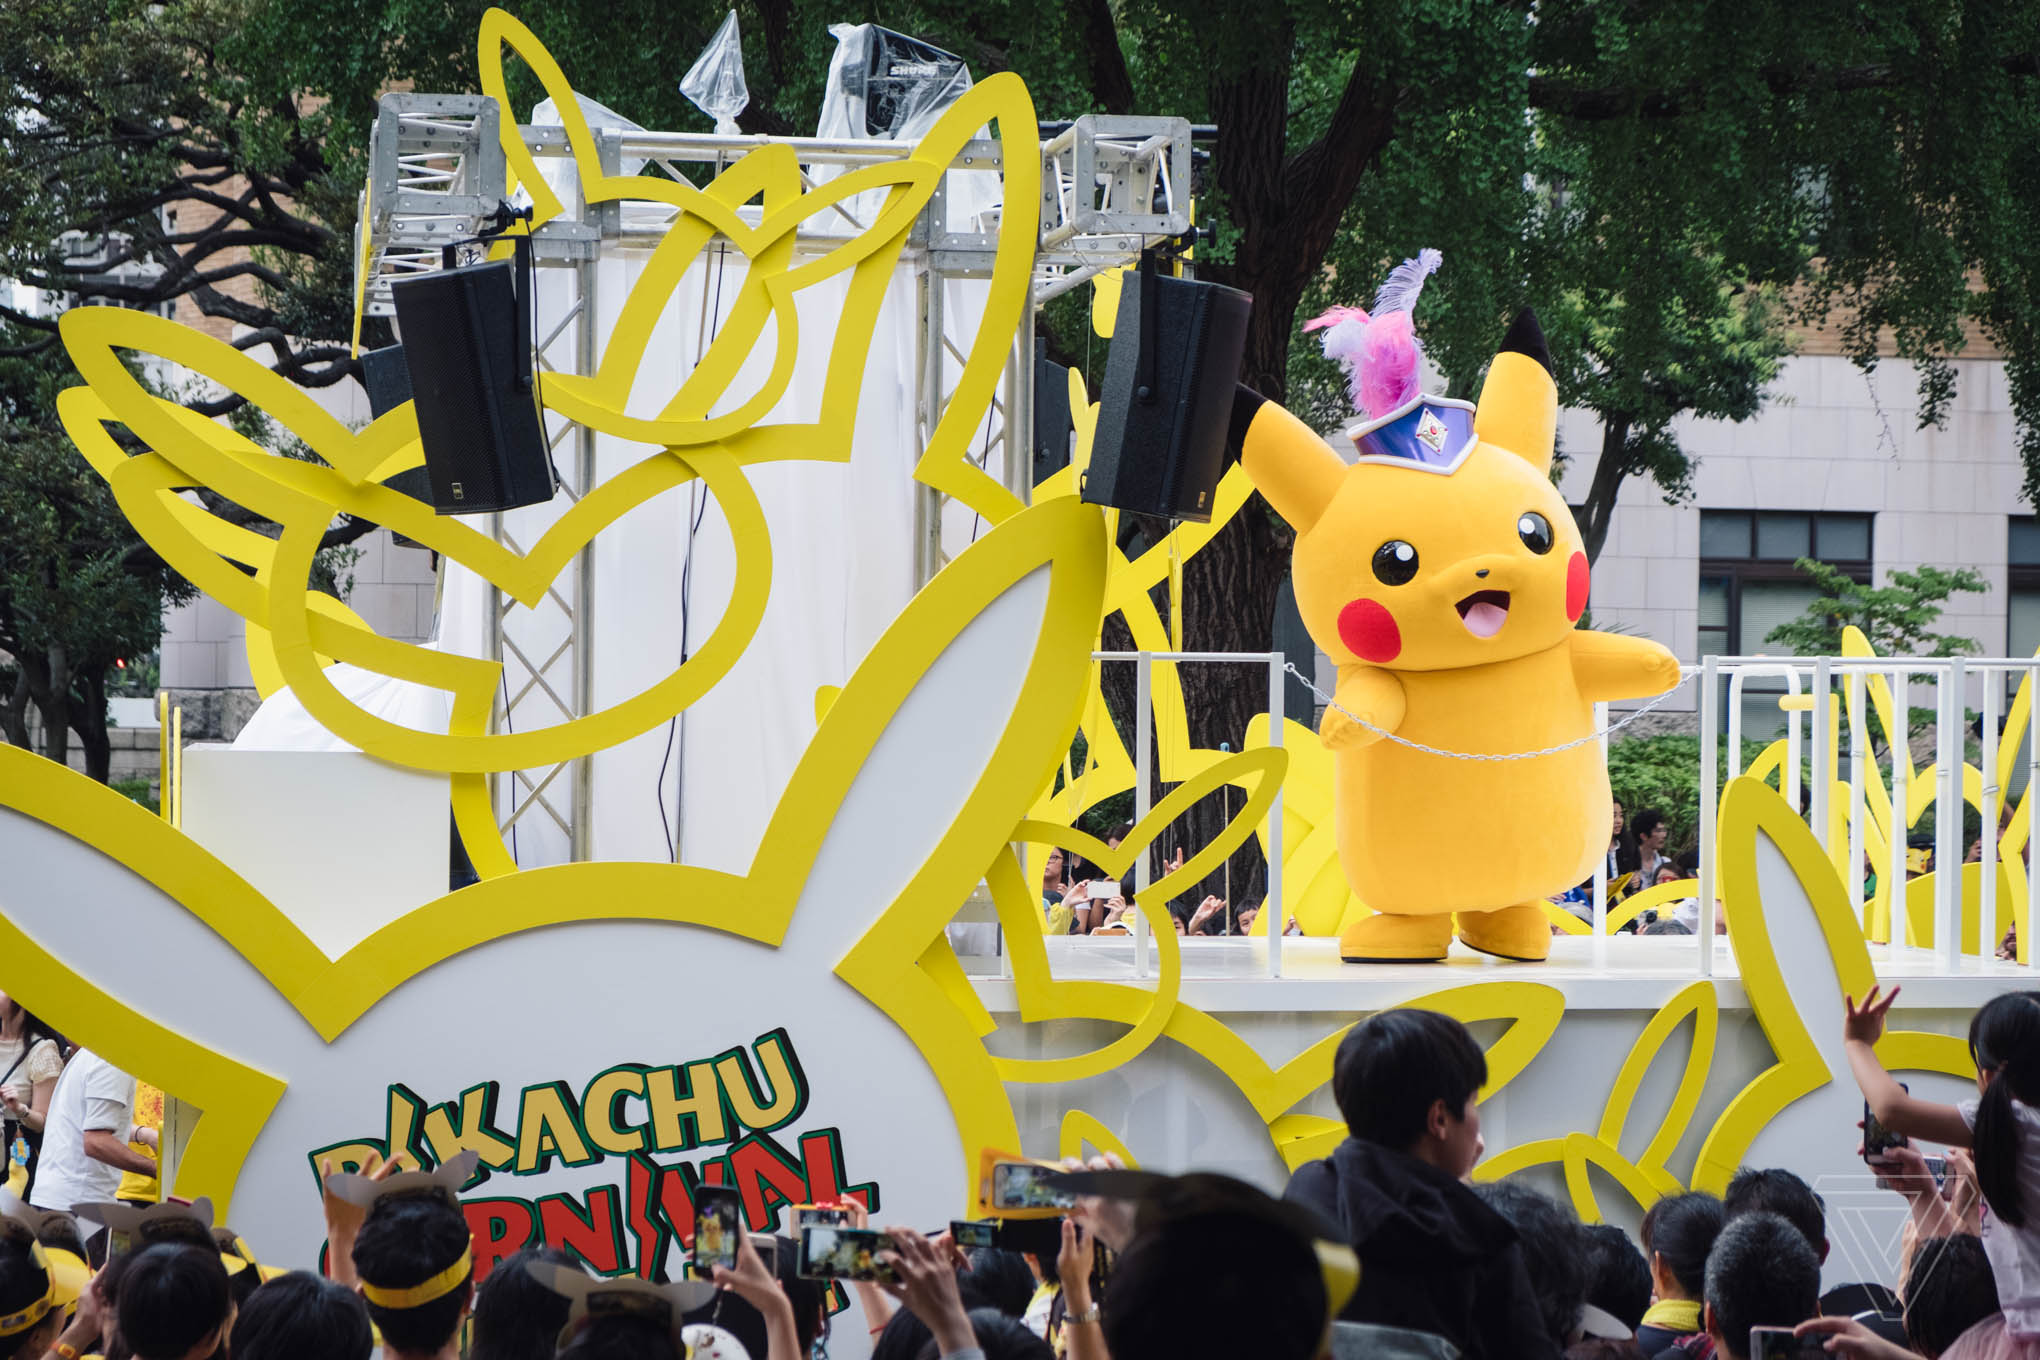 The Pikachu Carnival parade